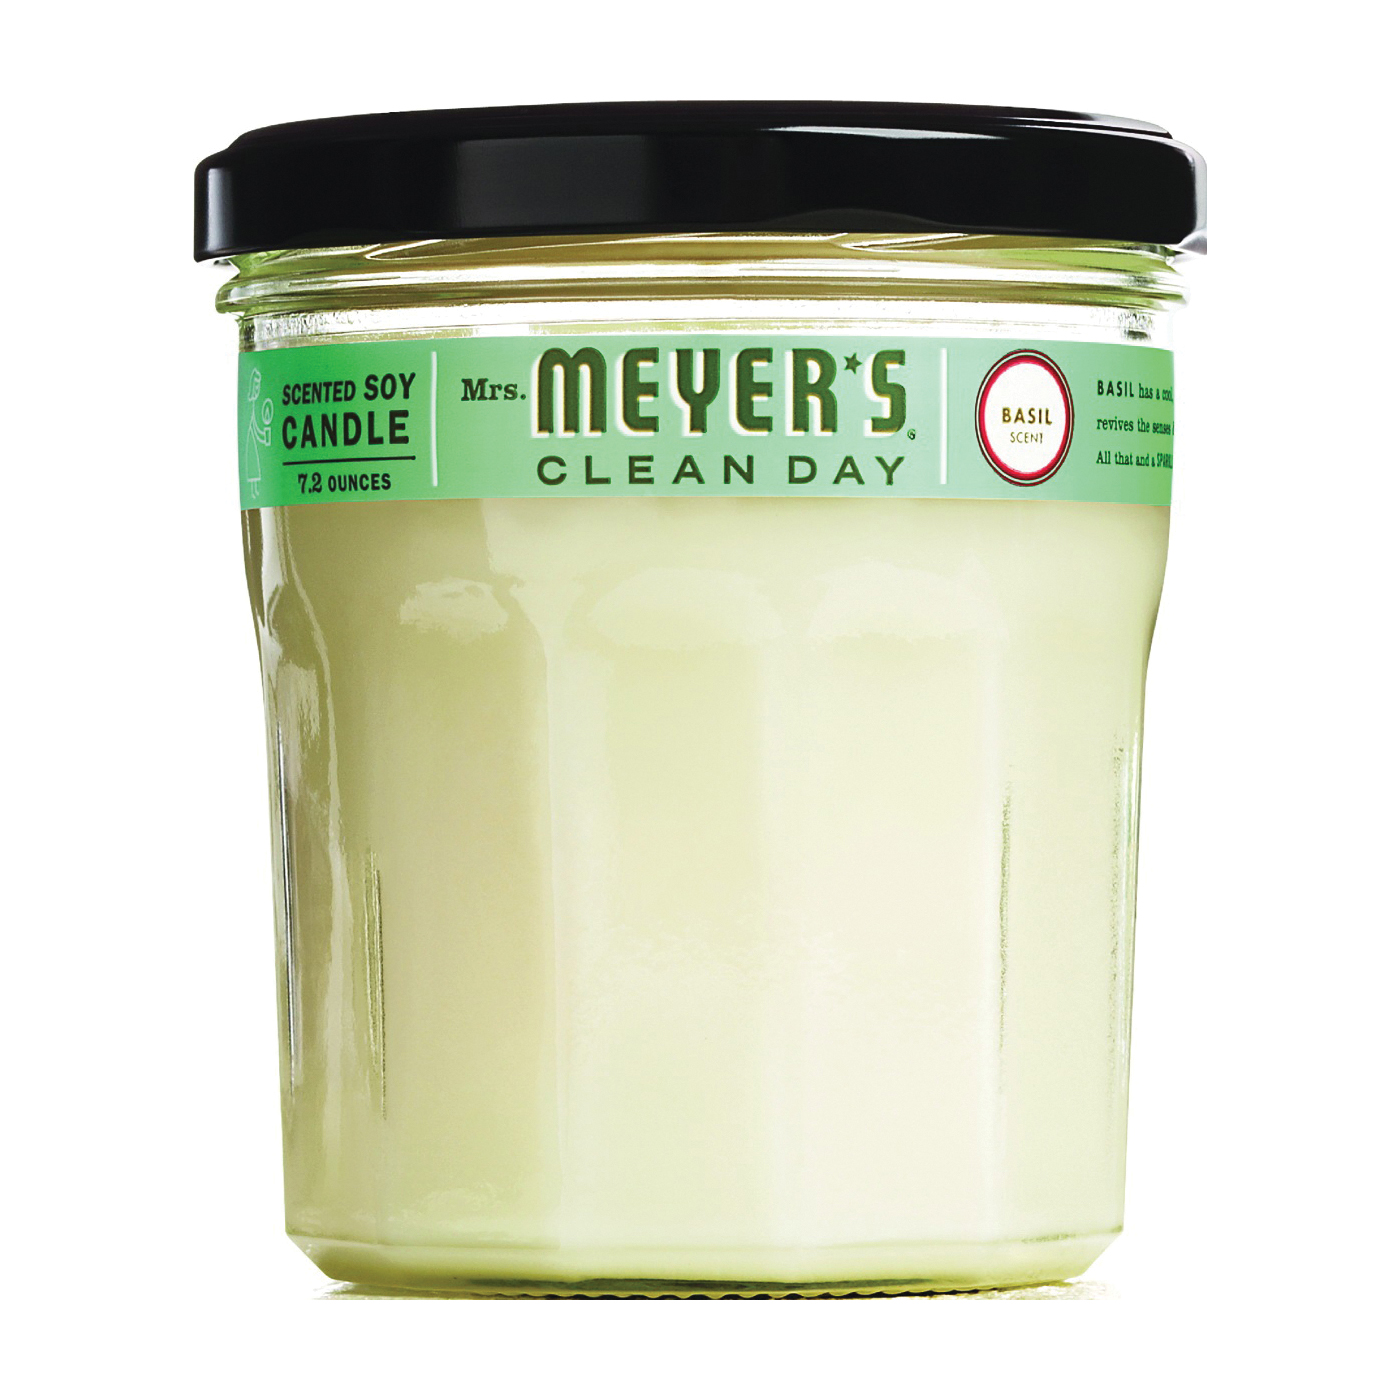 Picture of Mrs. Meyer's 44116 Soy Candle, Basil Scent Fragrance, Creamy Candle, 35 hr Burning